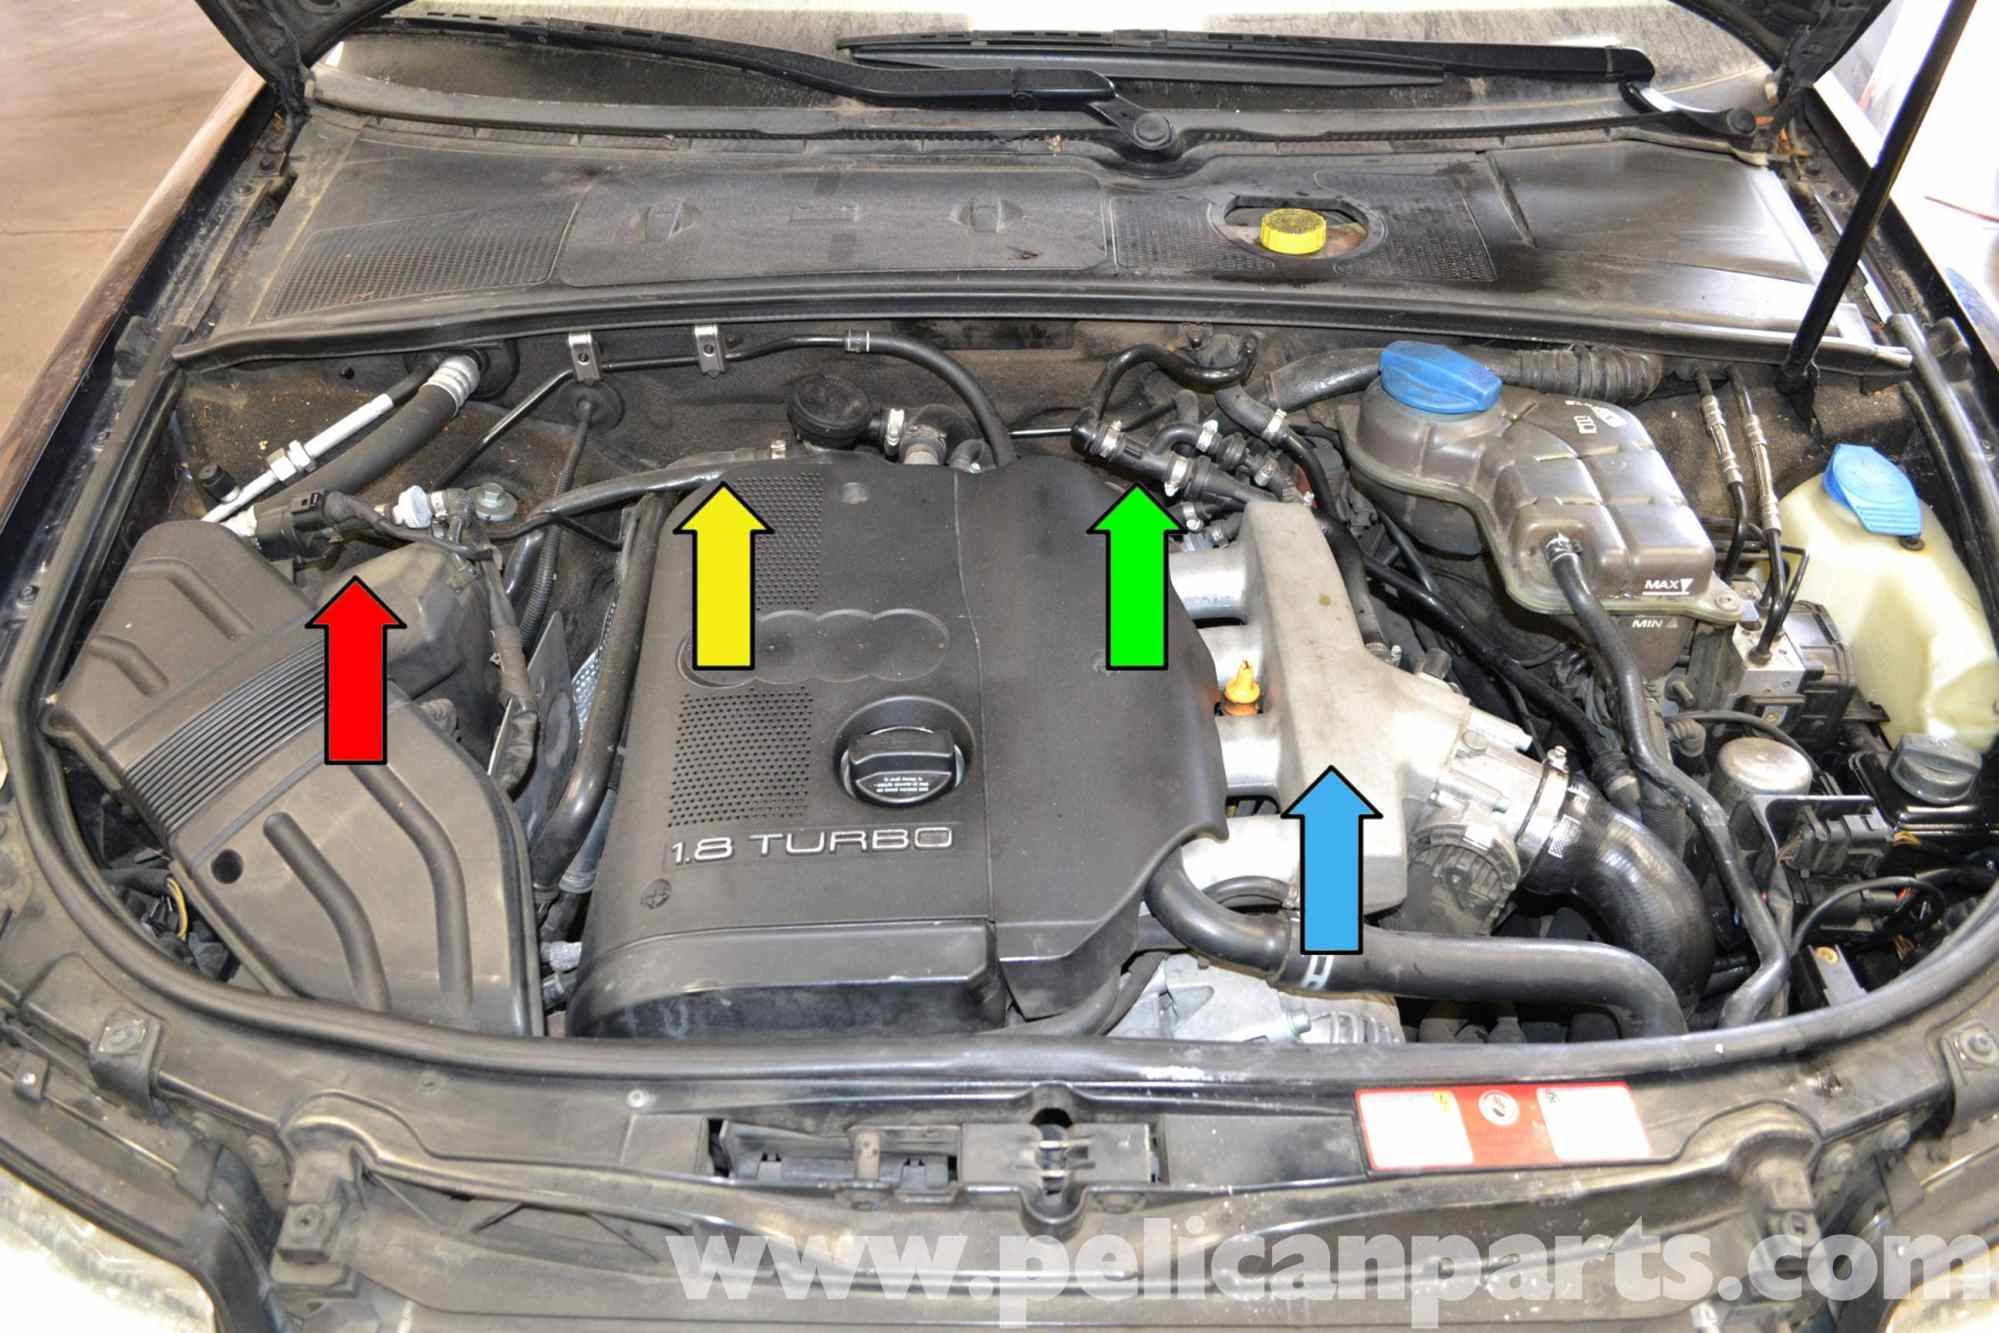 hight resolution of turbo further diagram for air intake system audi a4 quattro on 2001 diagram for air intake system audi a4 quattro on 2001 audi a4 1 8 also